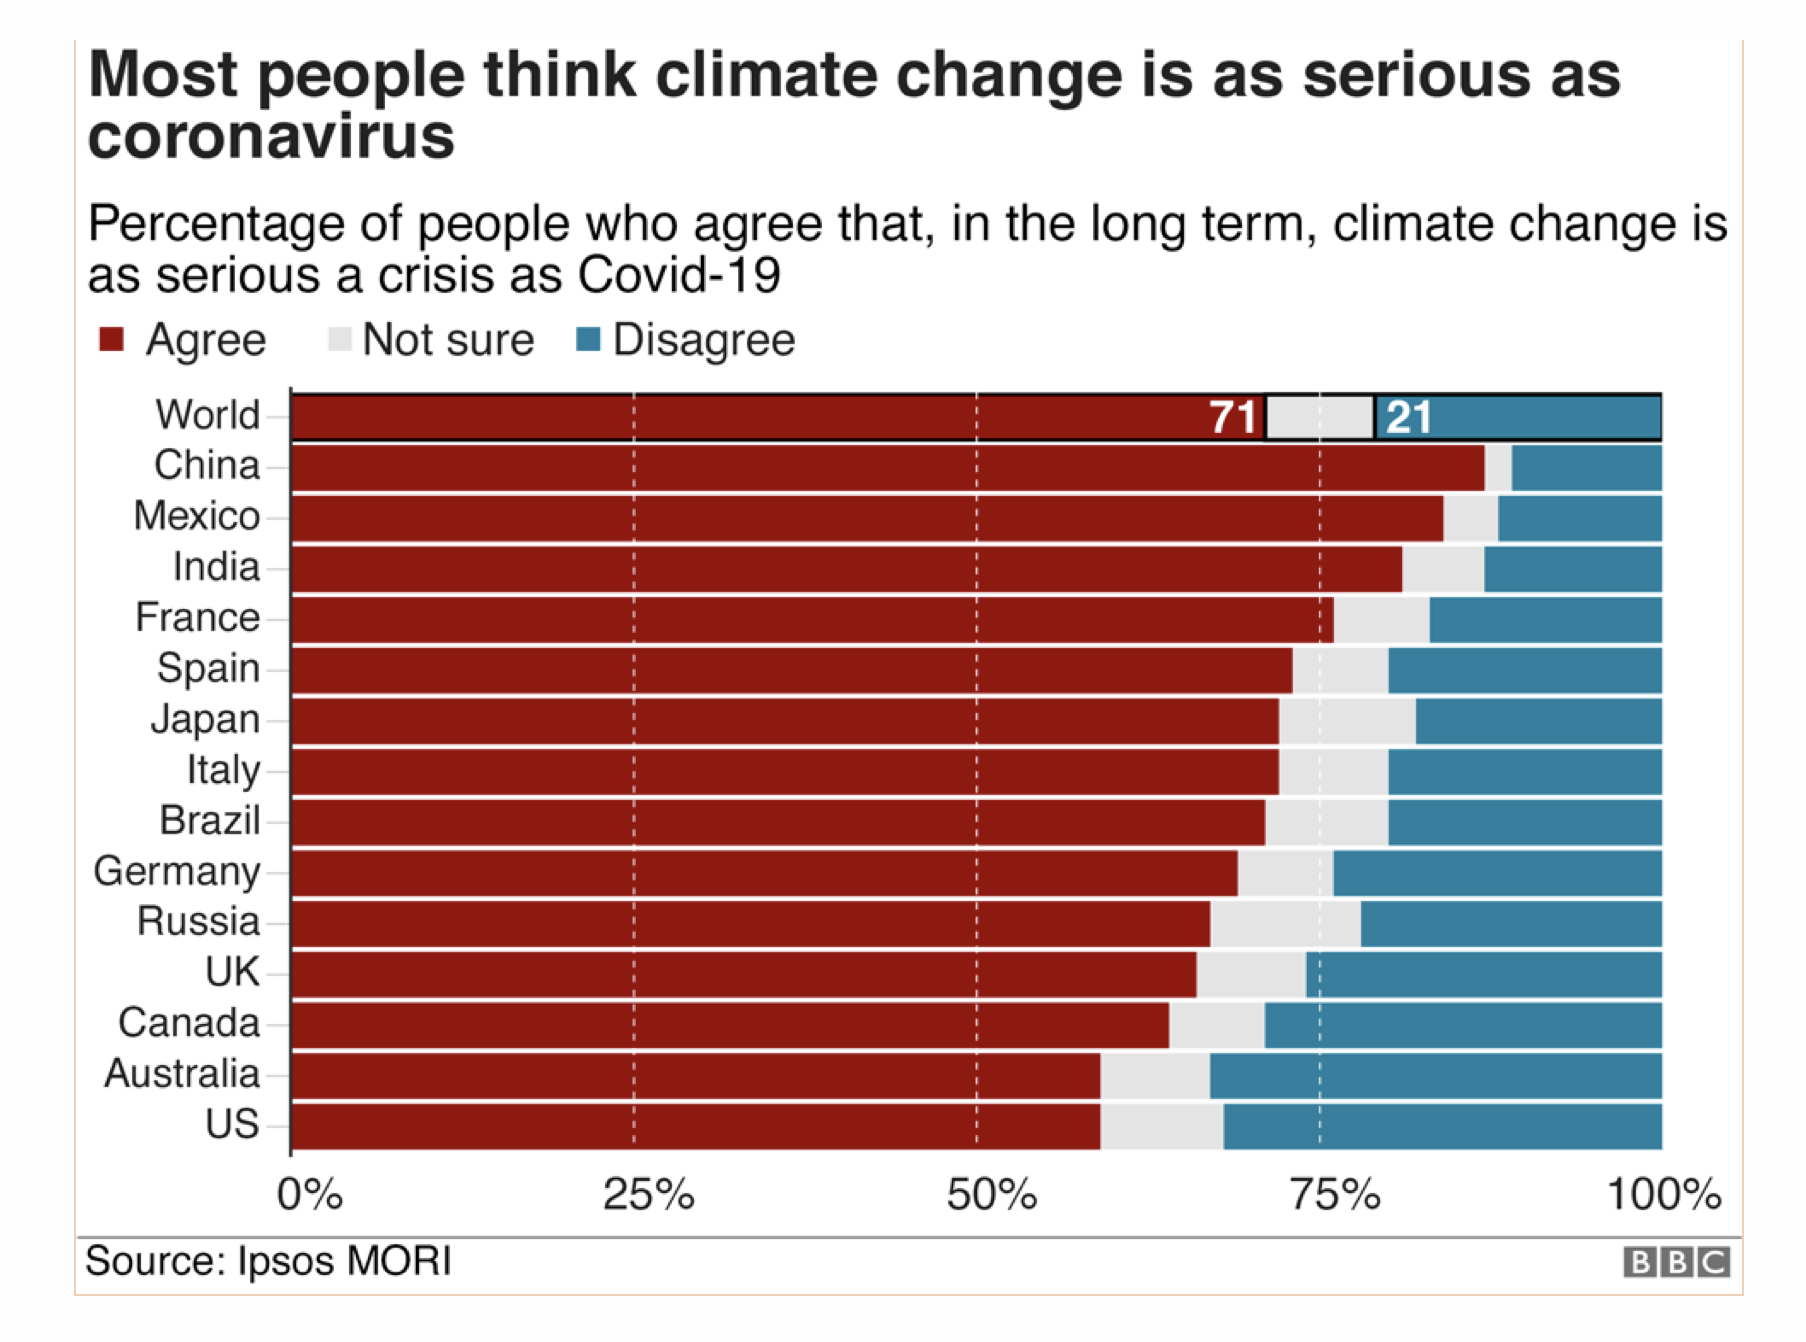 There is a worldwide consensus on the seriousness of climate change